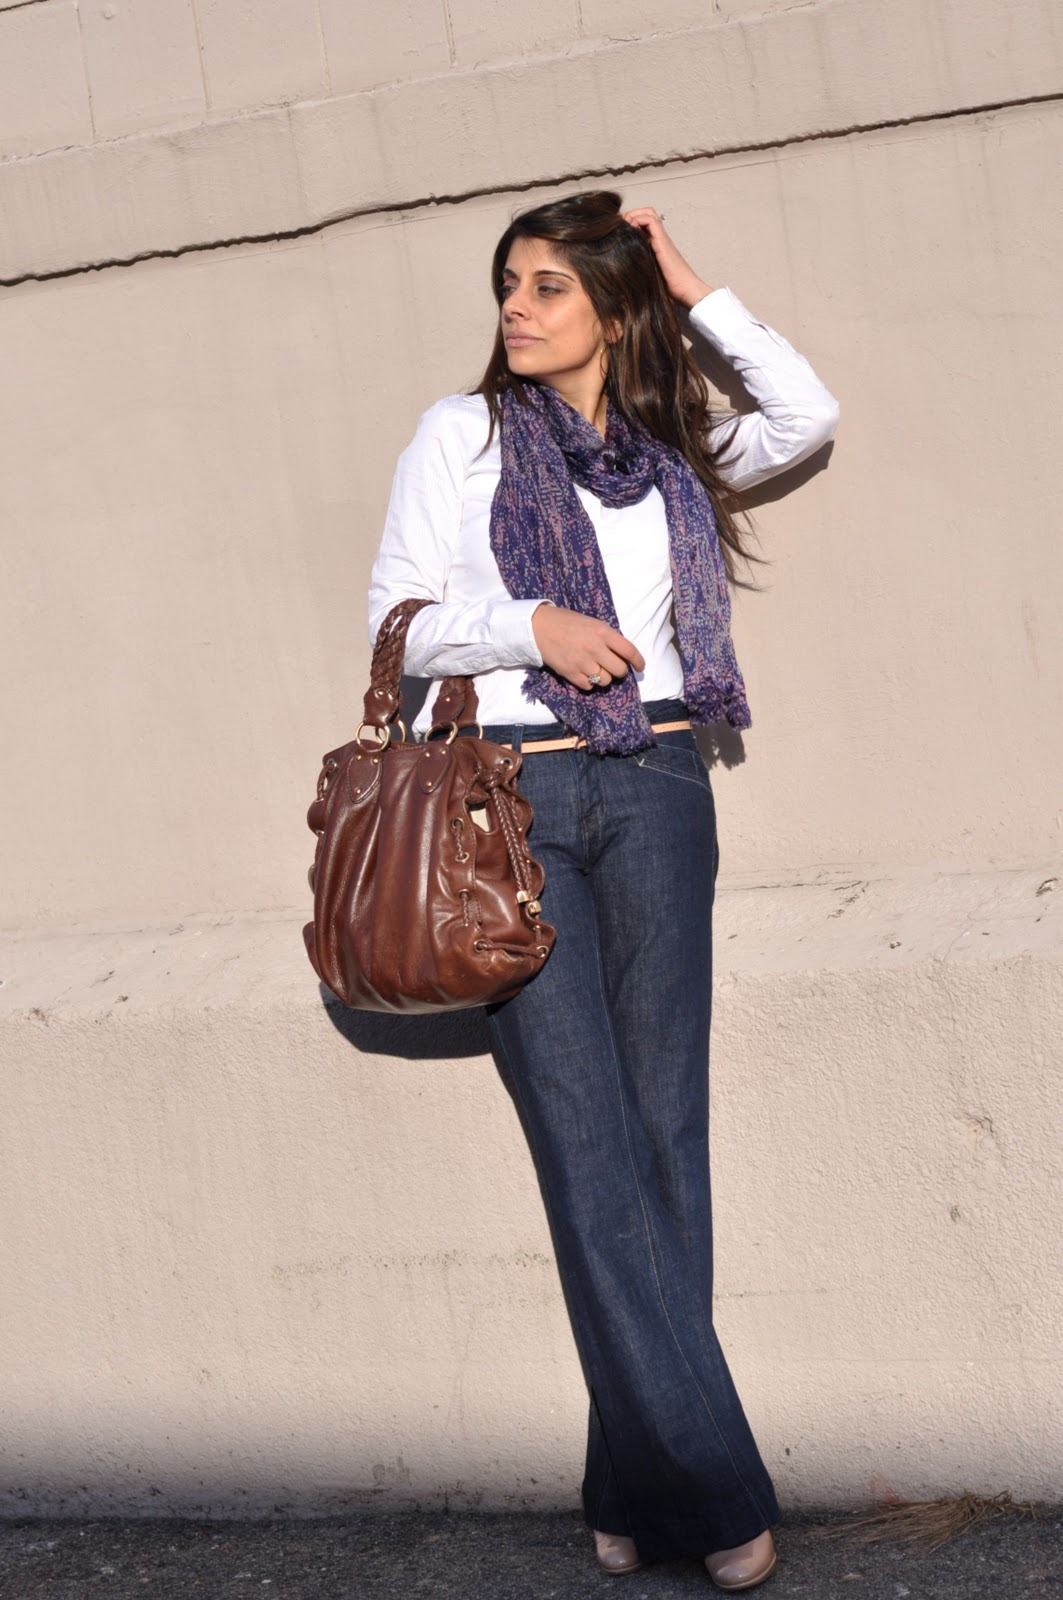 Naina Singla - fashion stylist and style expert - Blog - Denim Trend 2011   Go Wide 359d6aac50433